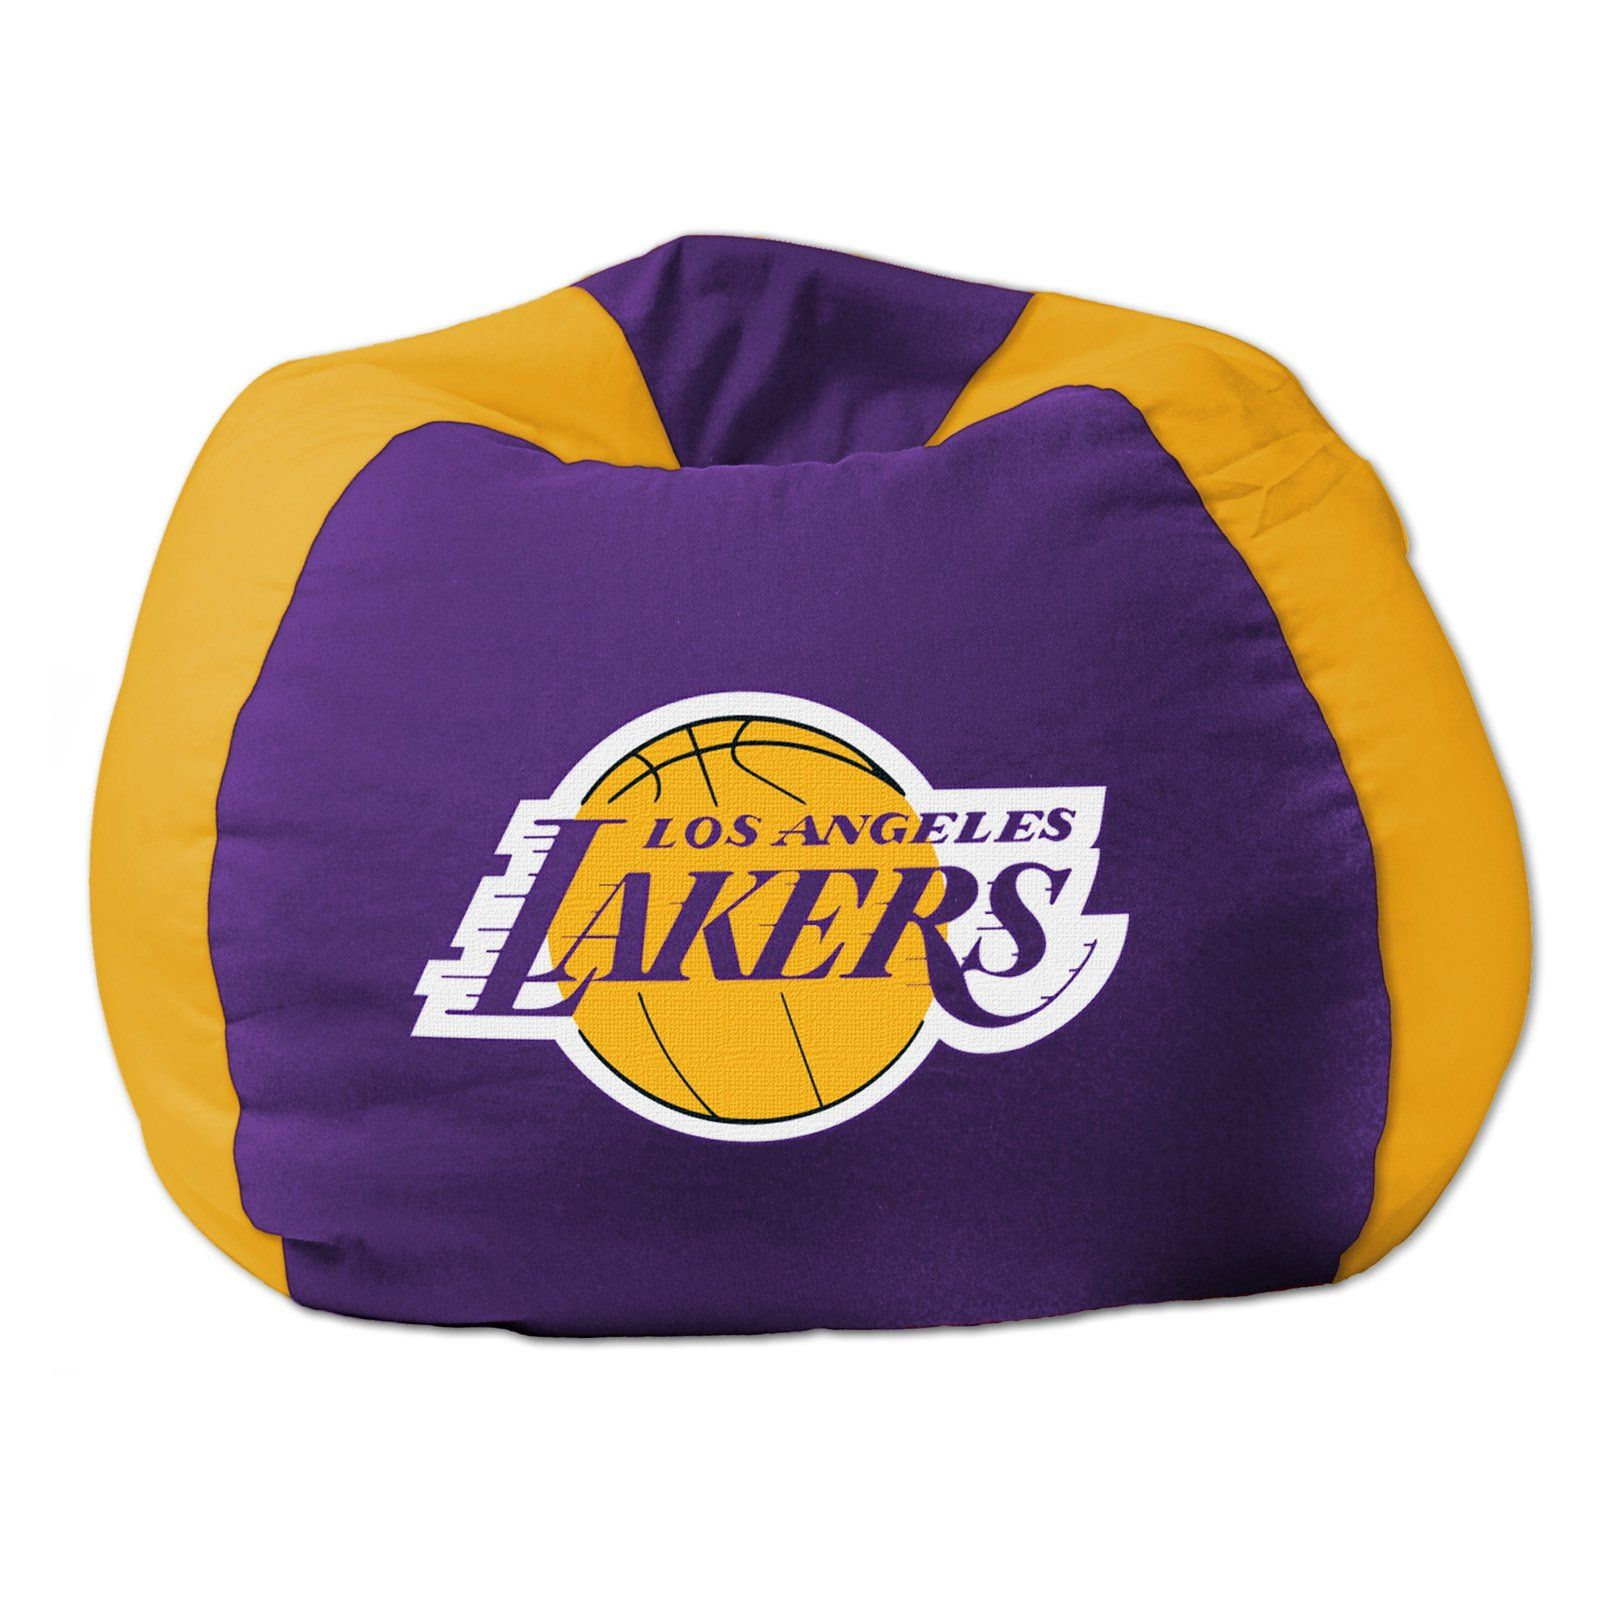 NBA Bean Bag Chair in 2019 Bean bag chair, Bean bag